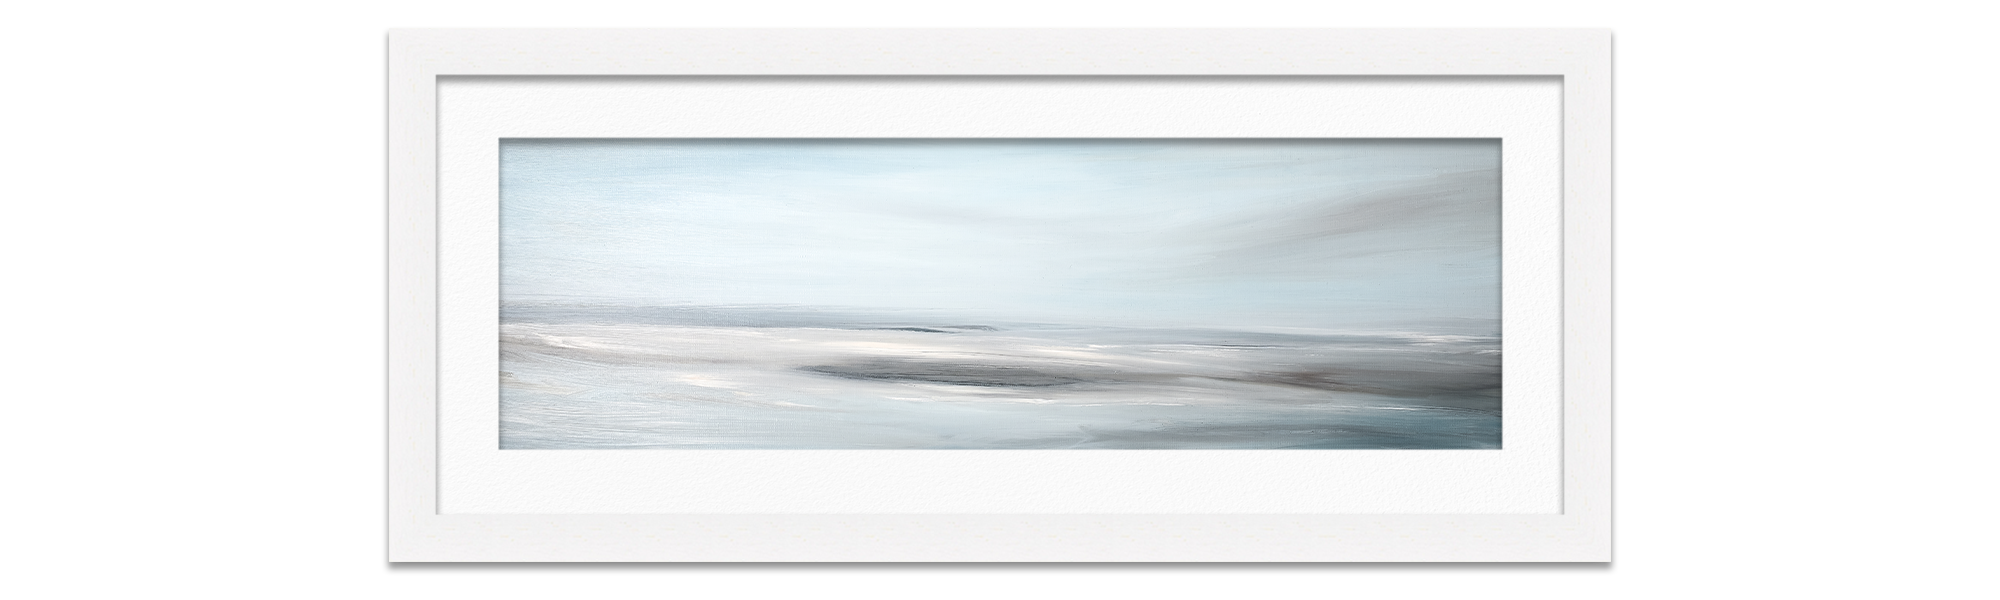 Framed painting of seascape by Karlyn Marshall Artist Artwork photographed by Life in Focus Portraits photography for small business Rhu Helensburgh